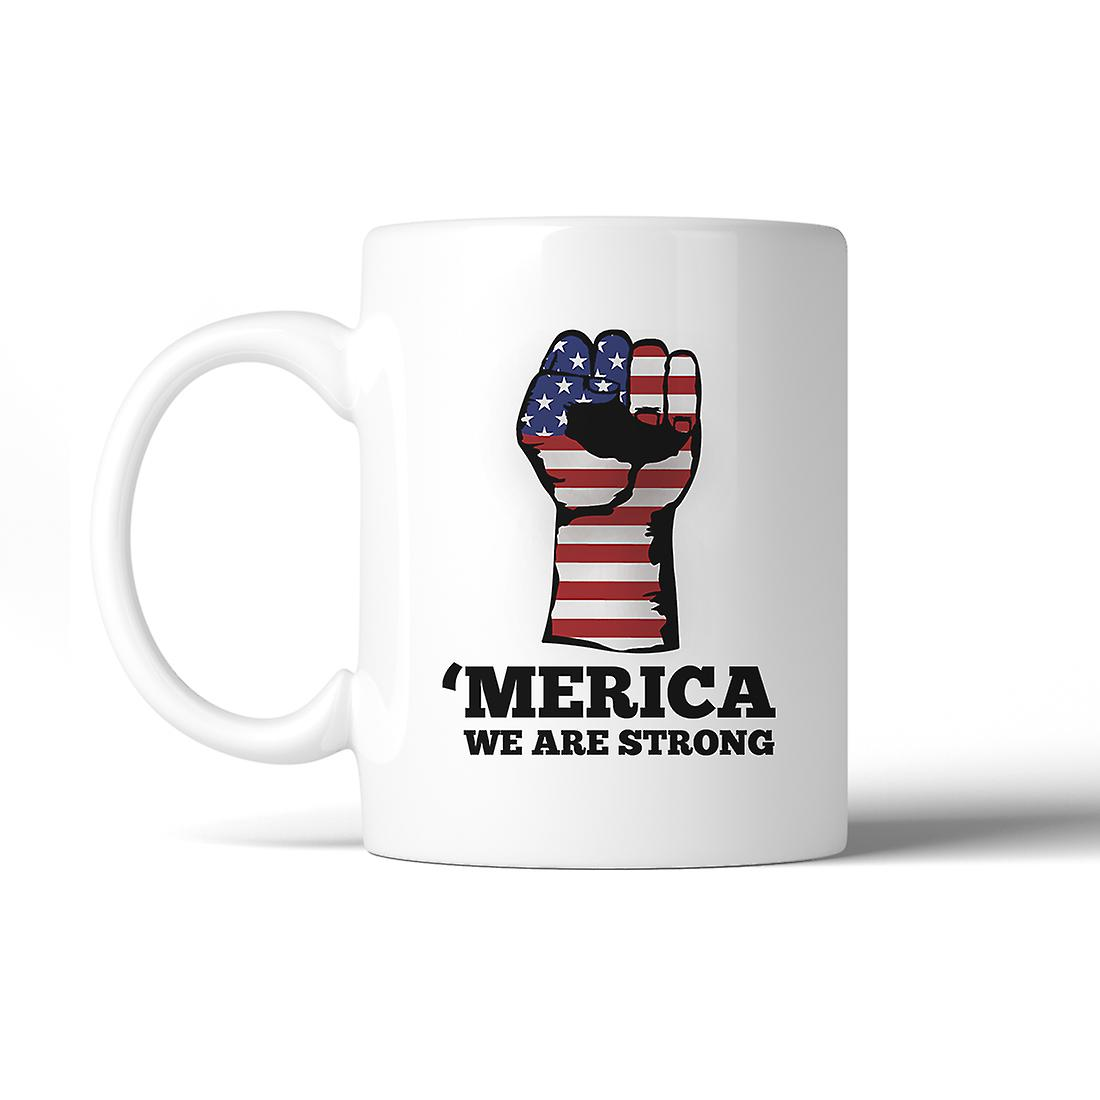 Strong We July Oz Coffee Mug Gifts Are 4th Of Merica Ceramic 11 mgbfIY6v7y